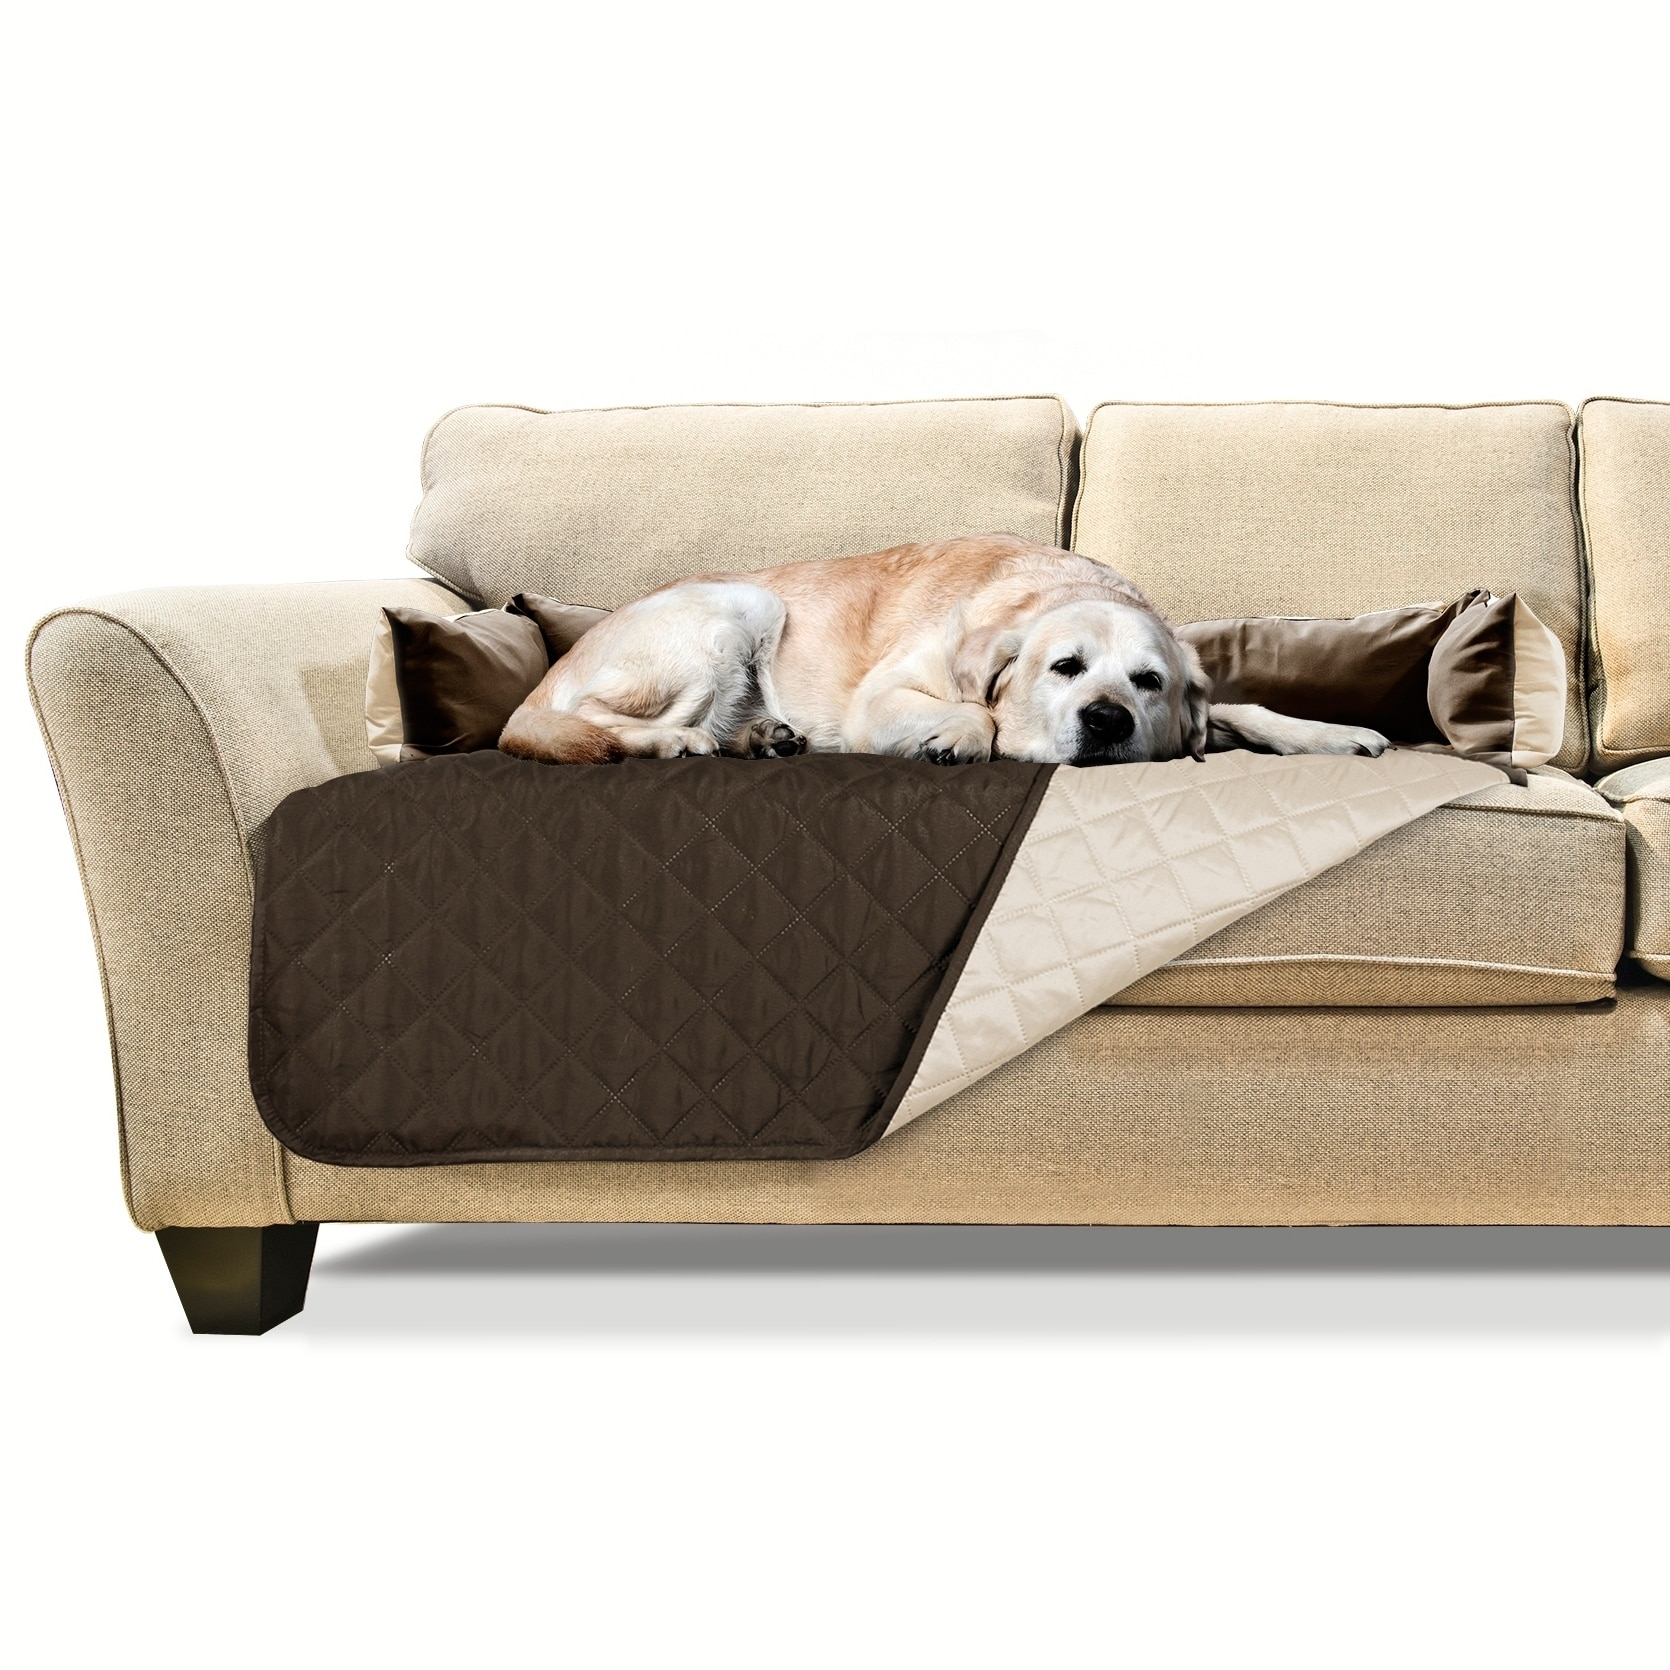 Furhaven Sofa Buddy Pet Bed Furniture Cover Free Shipping On Orders Over 45 13153933